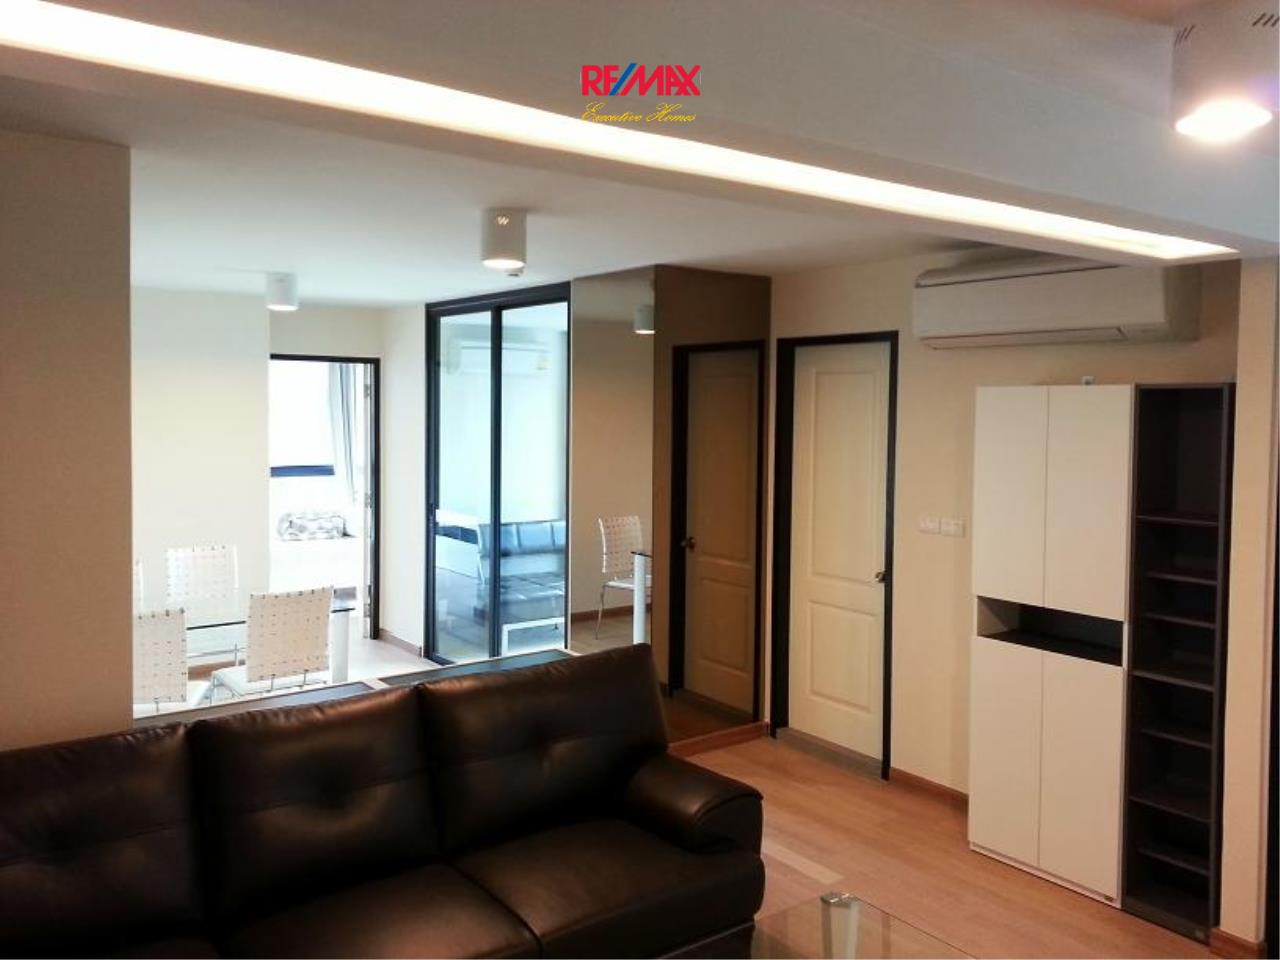 RE/MAX Executive Homes Agency's Beautiful 3 Bedroom for Rent and Sale Bangkok Feliz 69 8